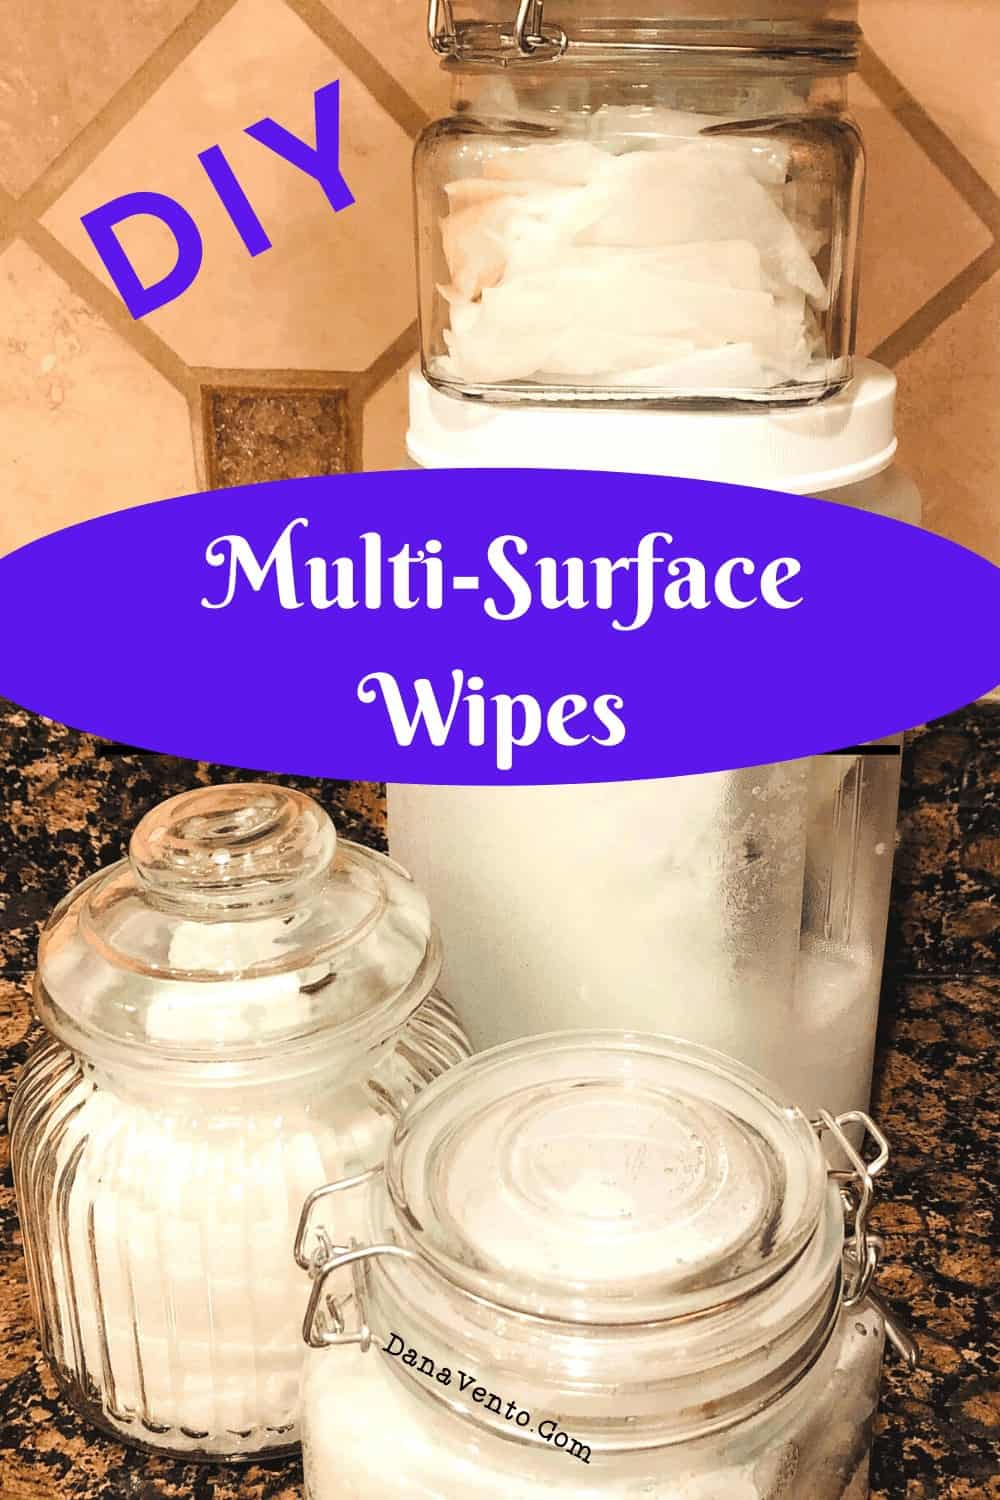 DIY Disinfectant Wipes Multisurface Cleaning, wipes on counter in jars made